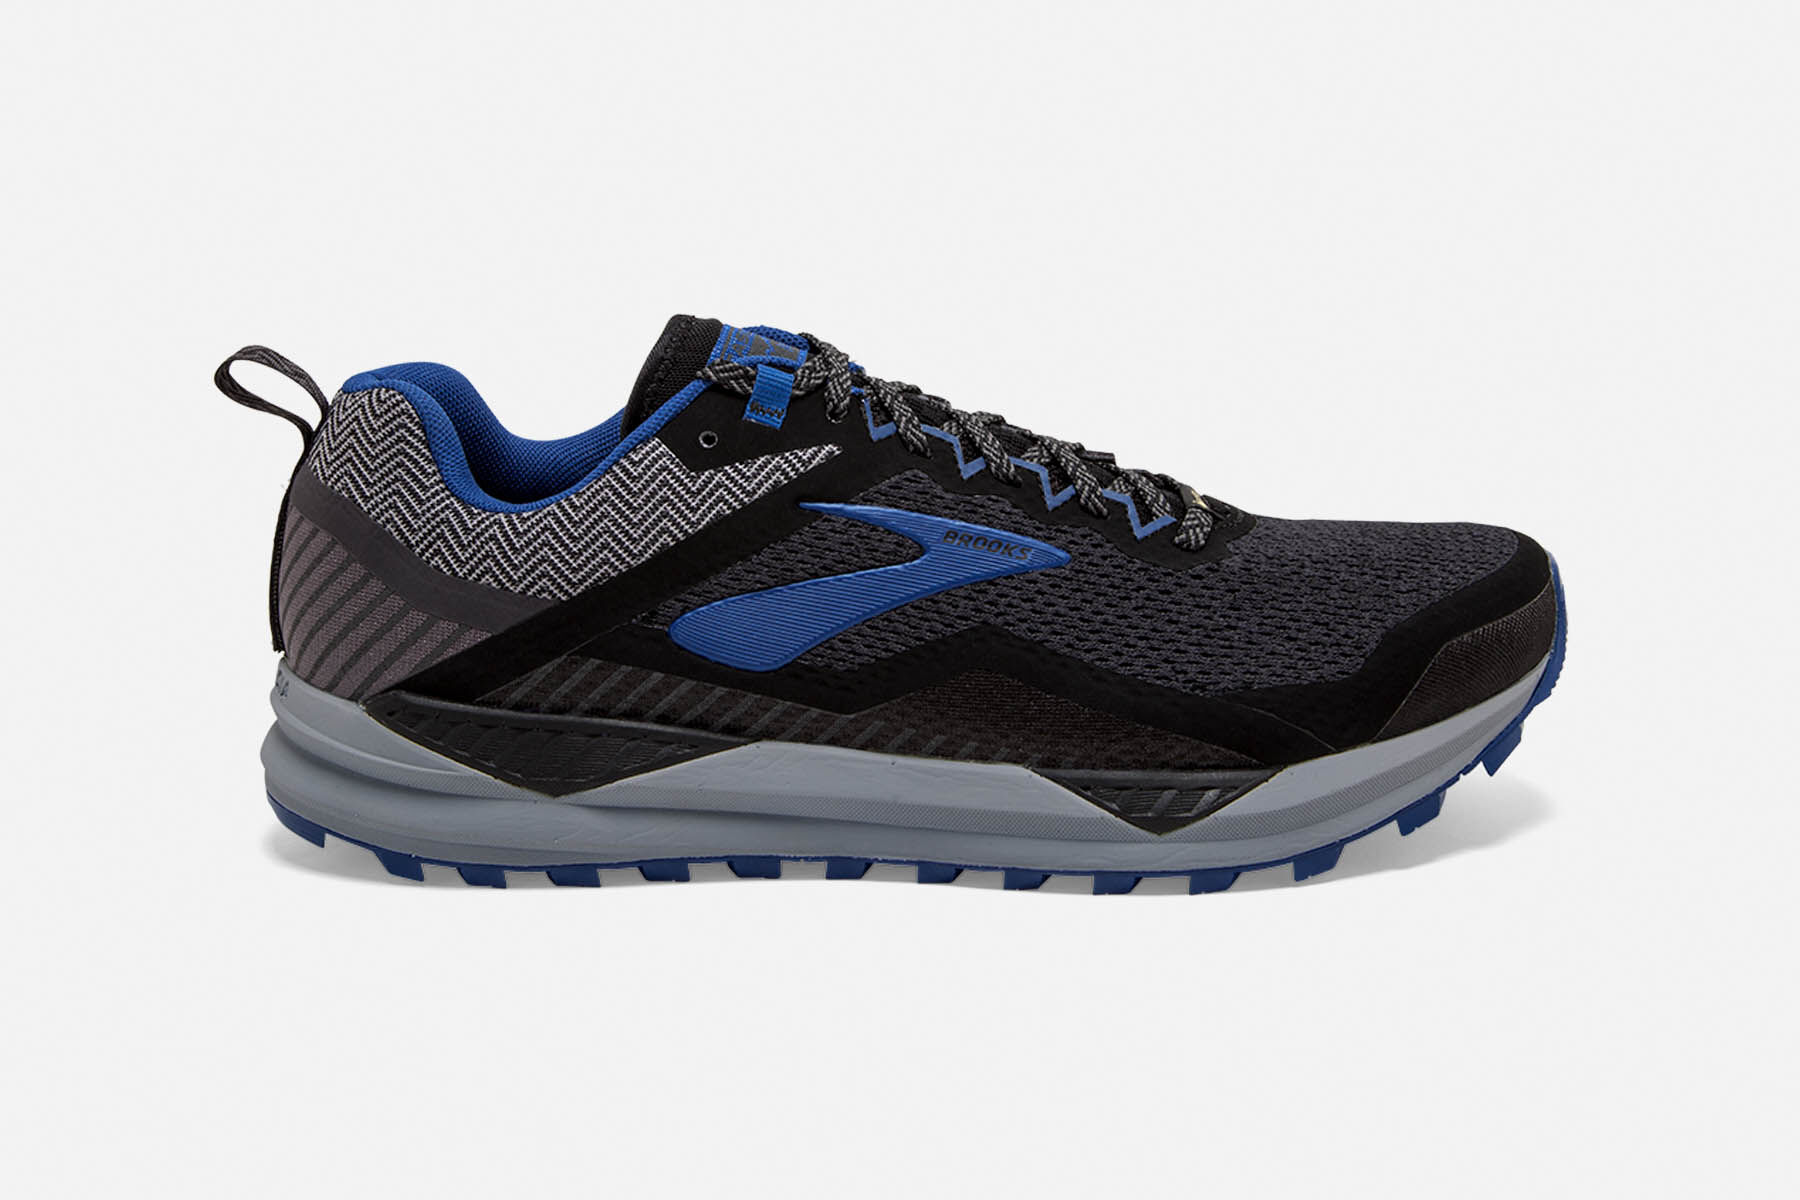 Cascadia 14 GTX | Men's Running Shoes